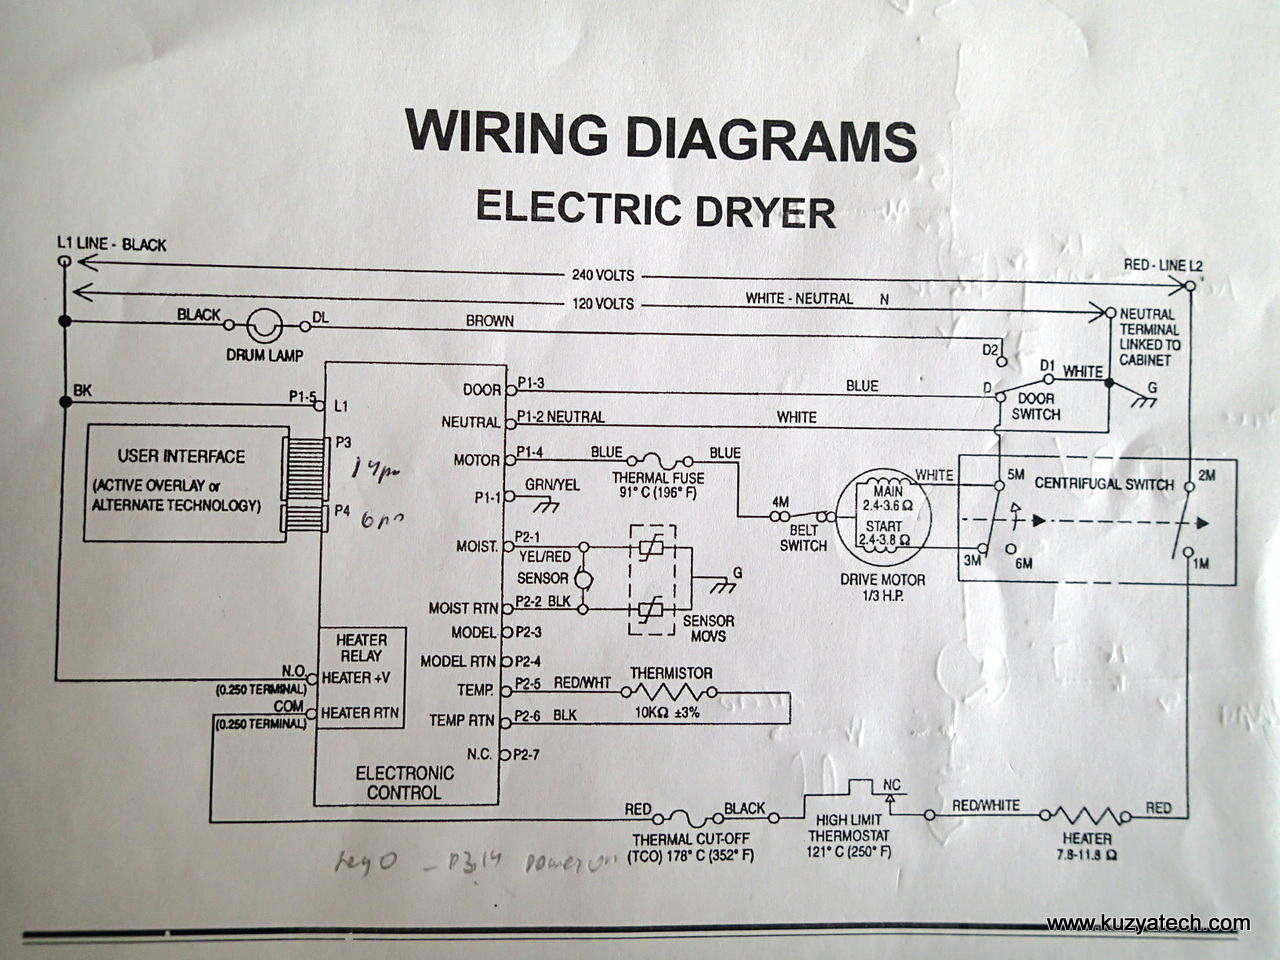 whirlpool dryer wiring diagram le5700xsno whirlpool dryer wiring diagram whirlpool duet gew9250pw0 resurrection | kuzyatech